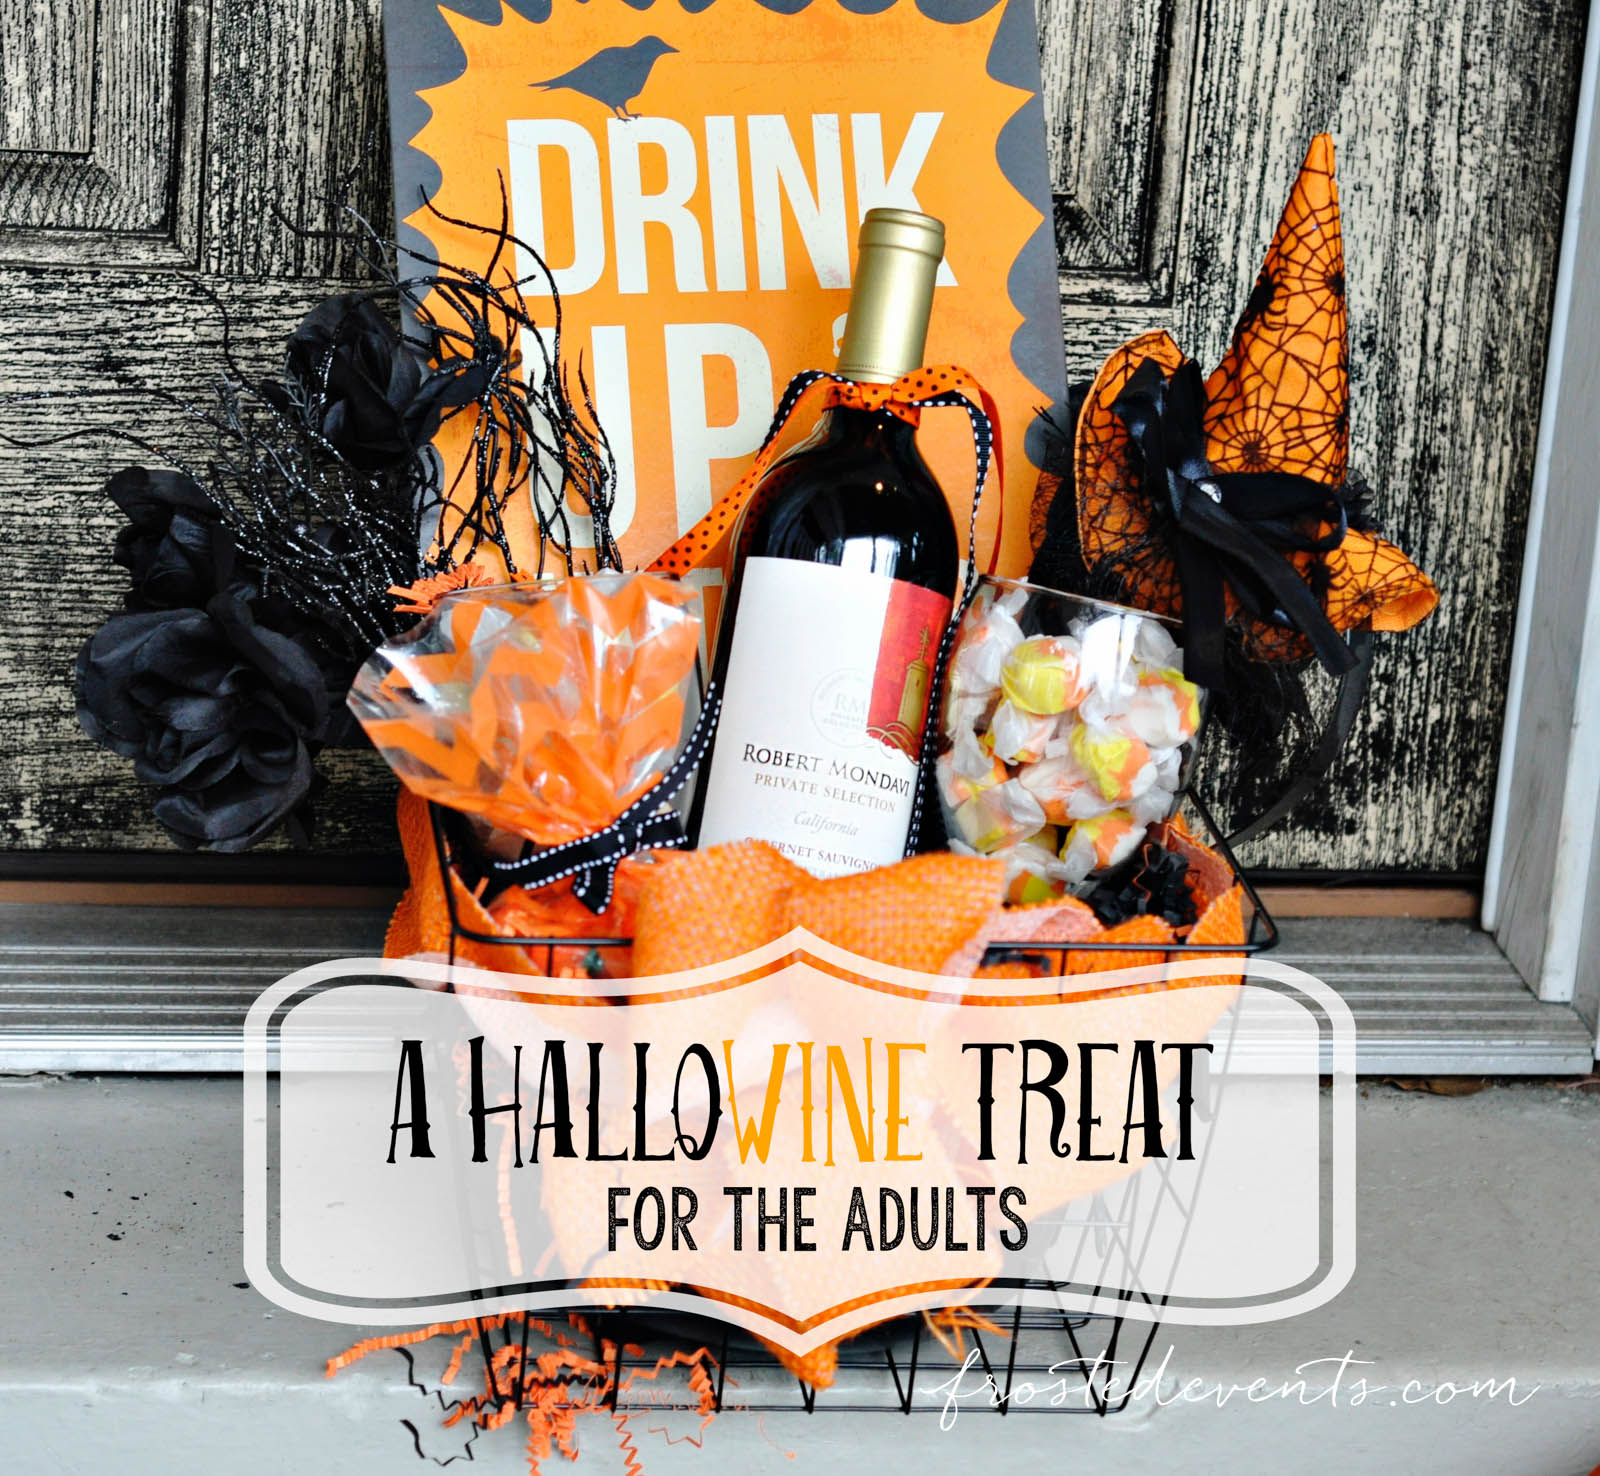 20 Creative Must See Wedding Ideas For Kids: DIY HalloWINE Treat For Moms- You've Been BOOed